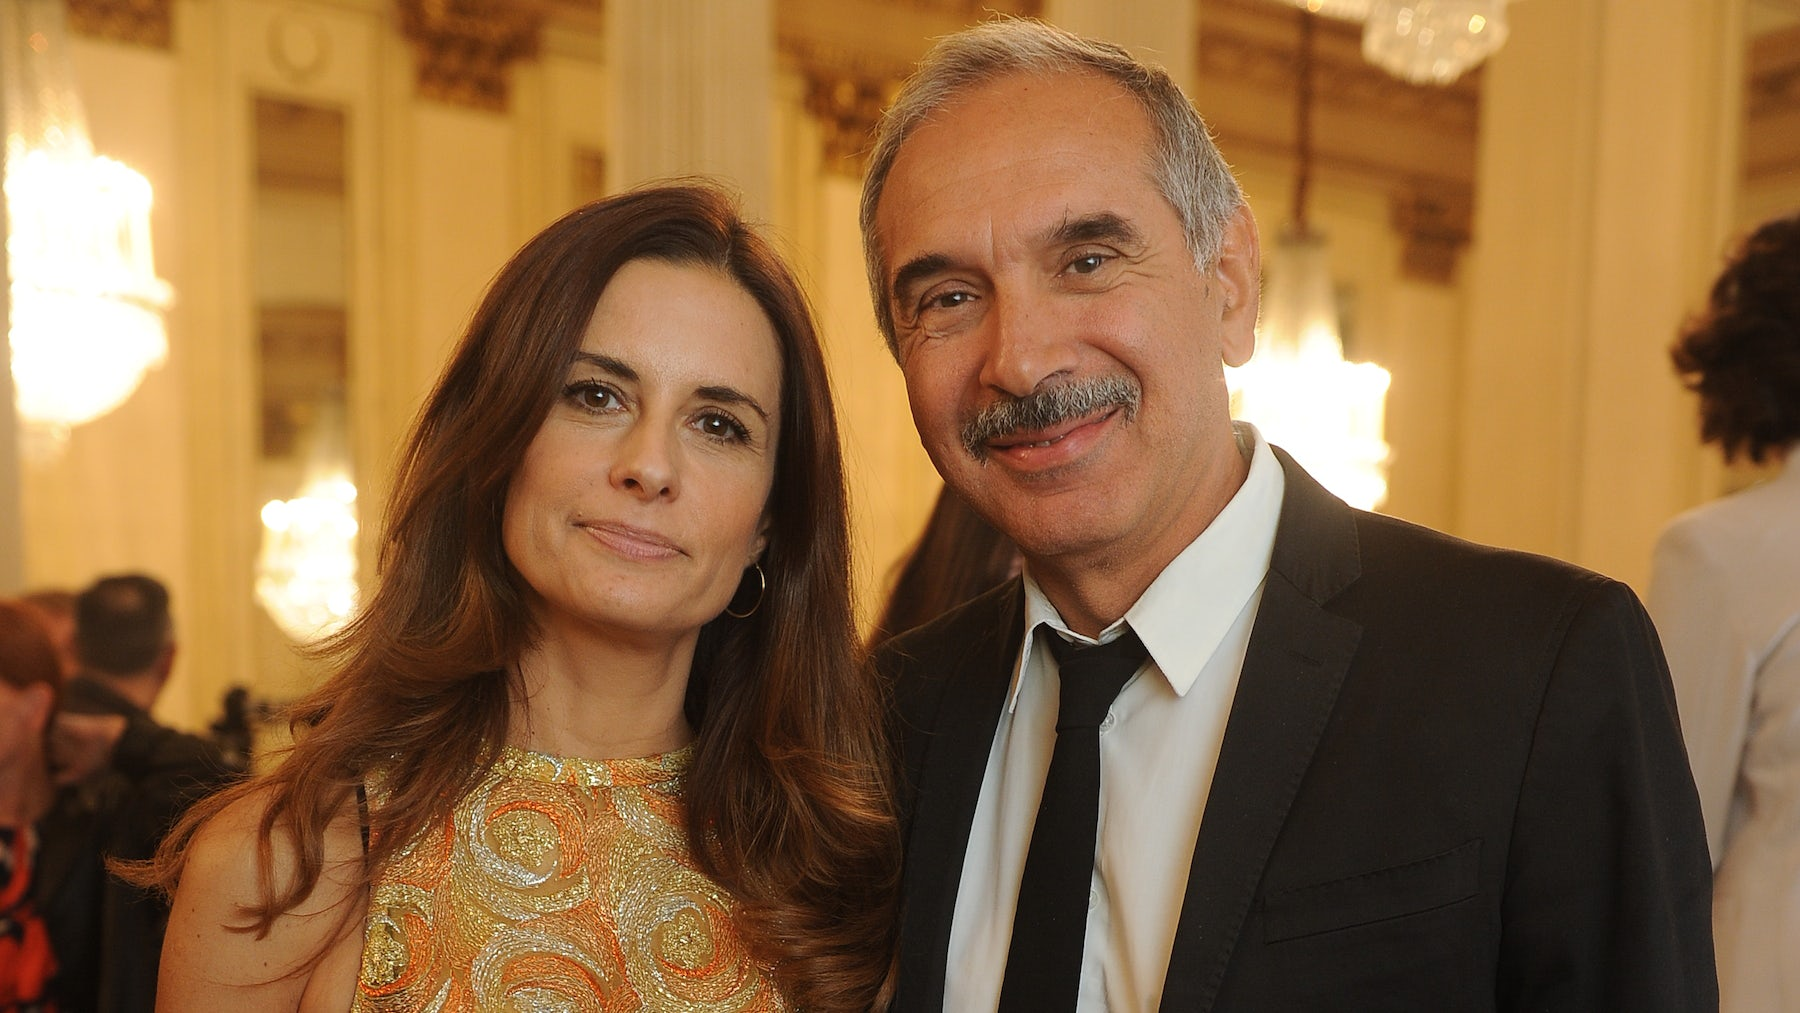 Eco-Age's Livia Firth with CNMI president Carlo Capasa | Source: Courtesy